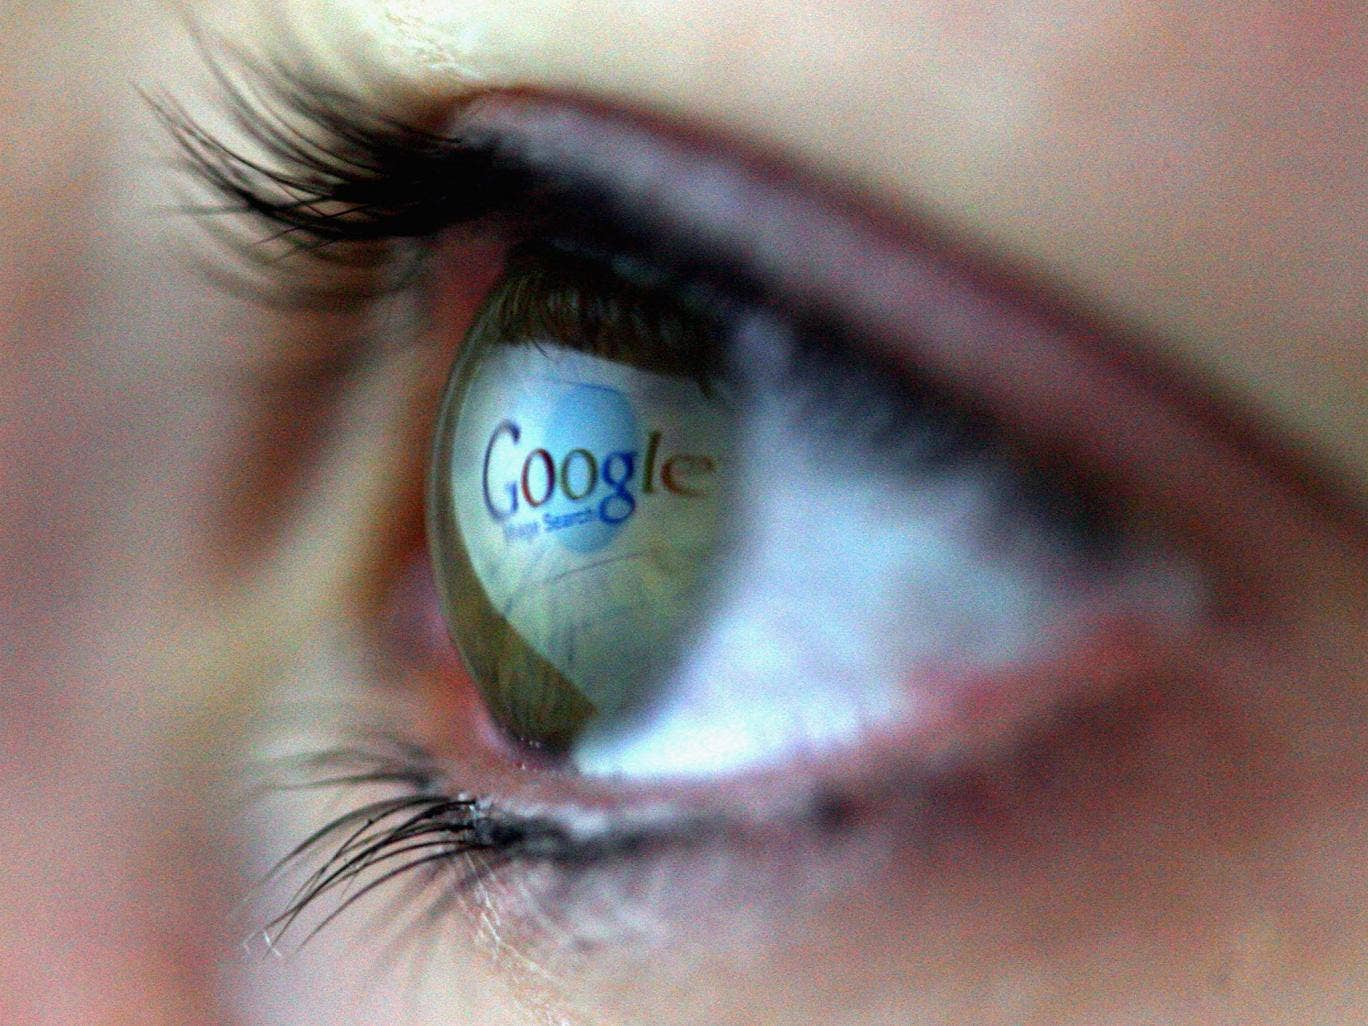 Private eye: Google provides access to a huge amount of highly personal information on individuals